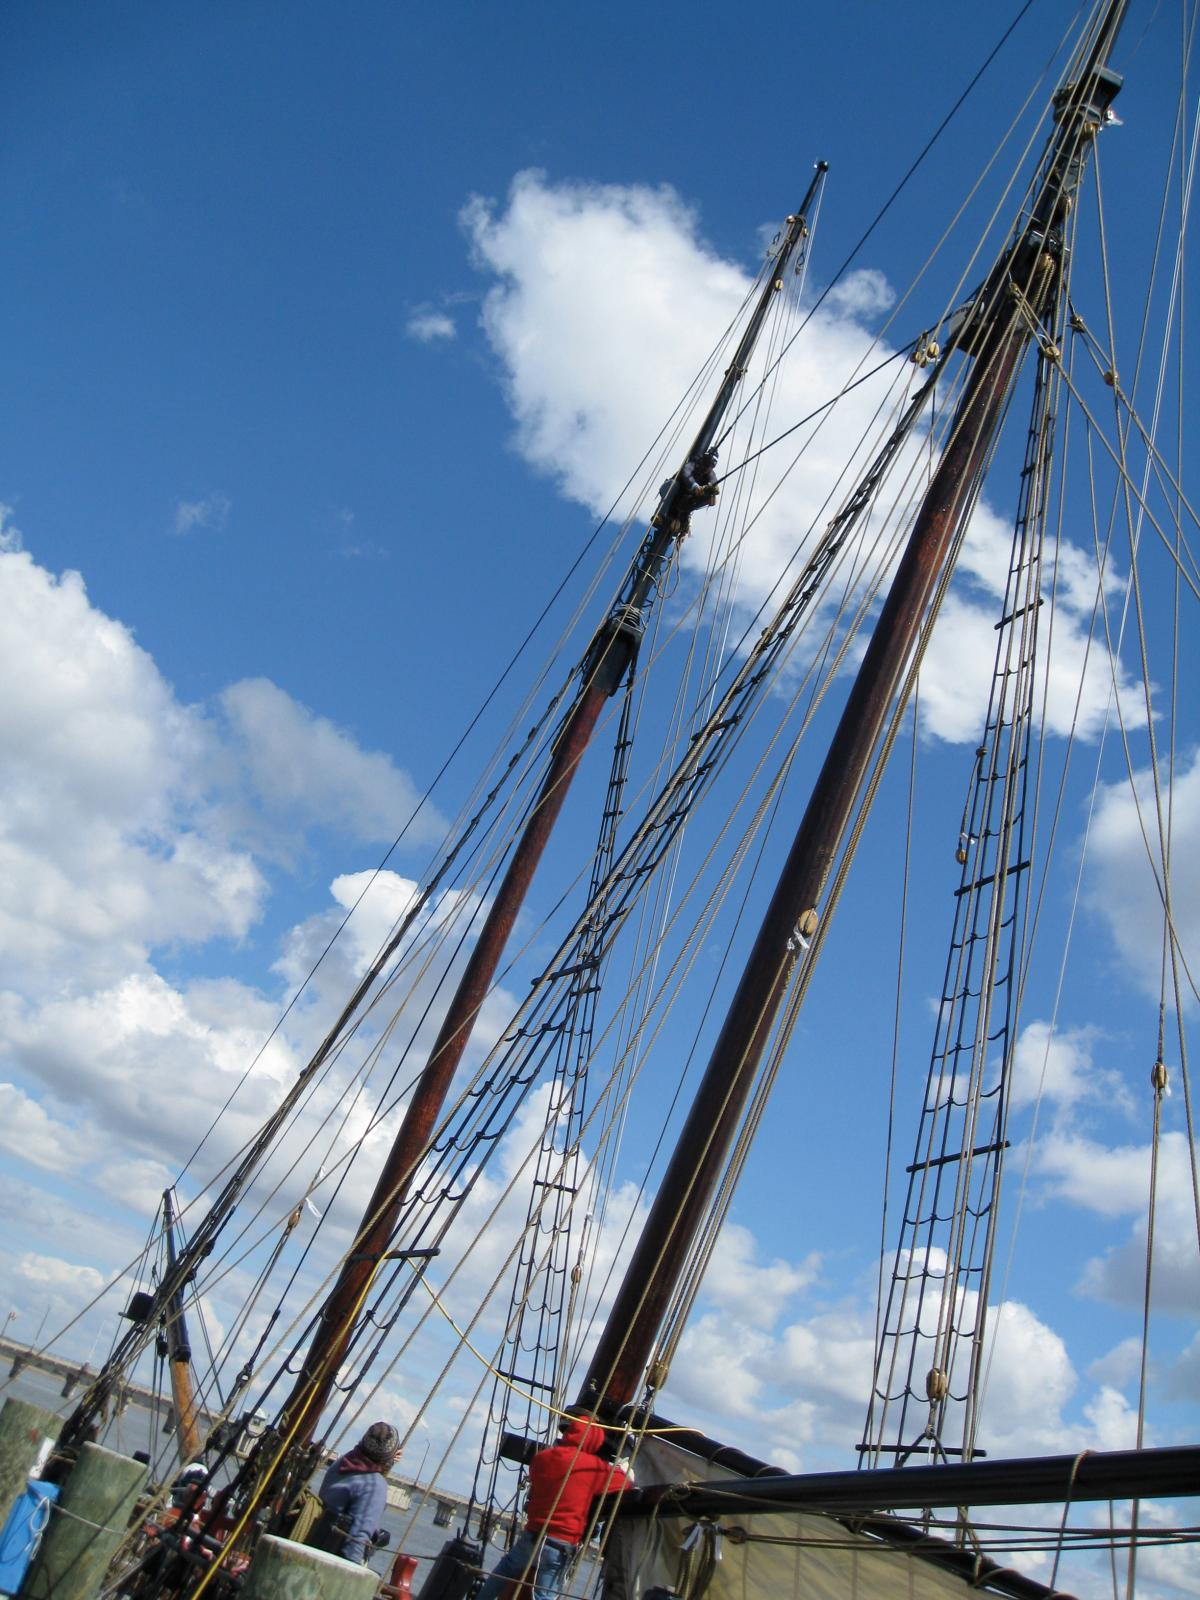 Photograph of schooner boat